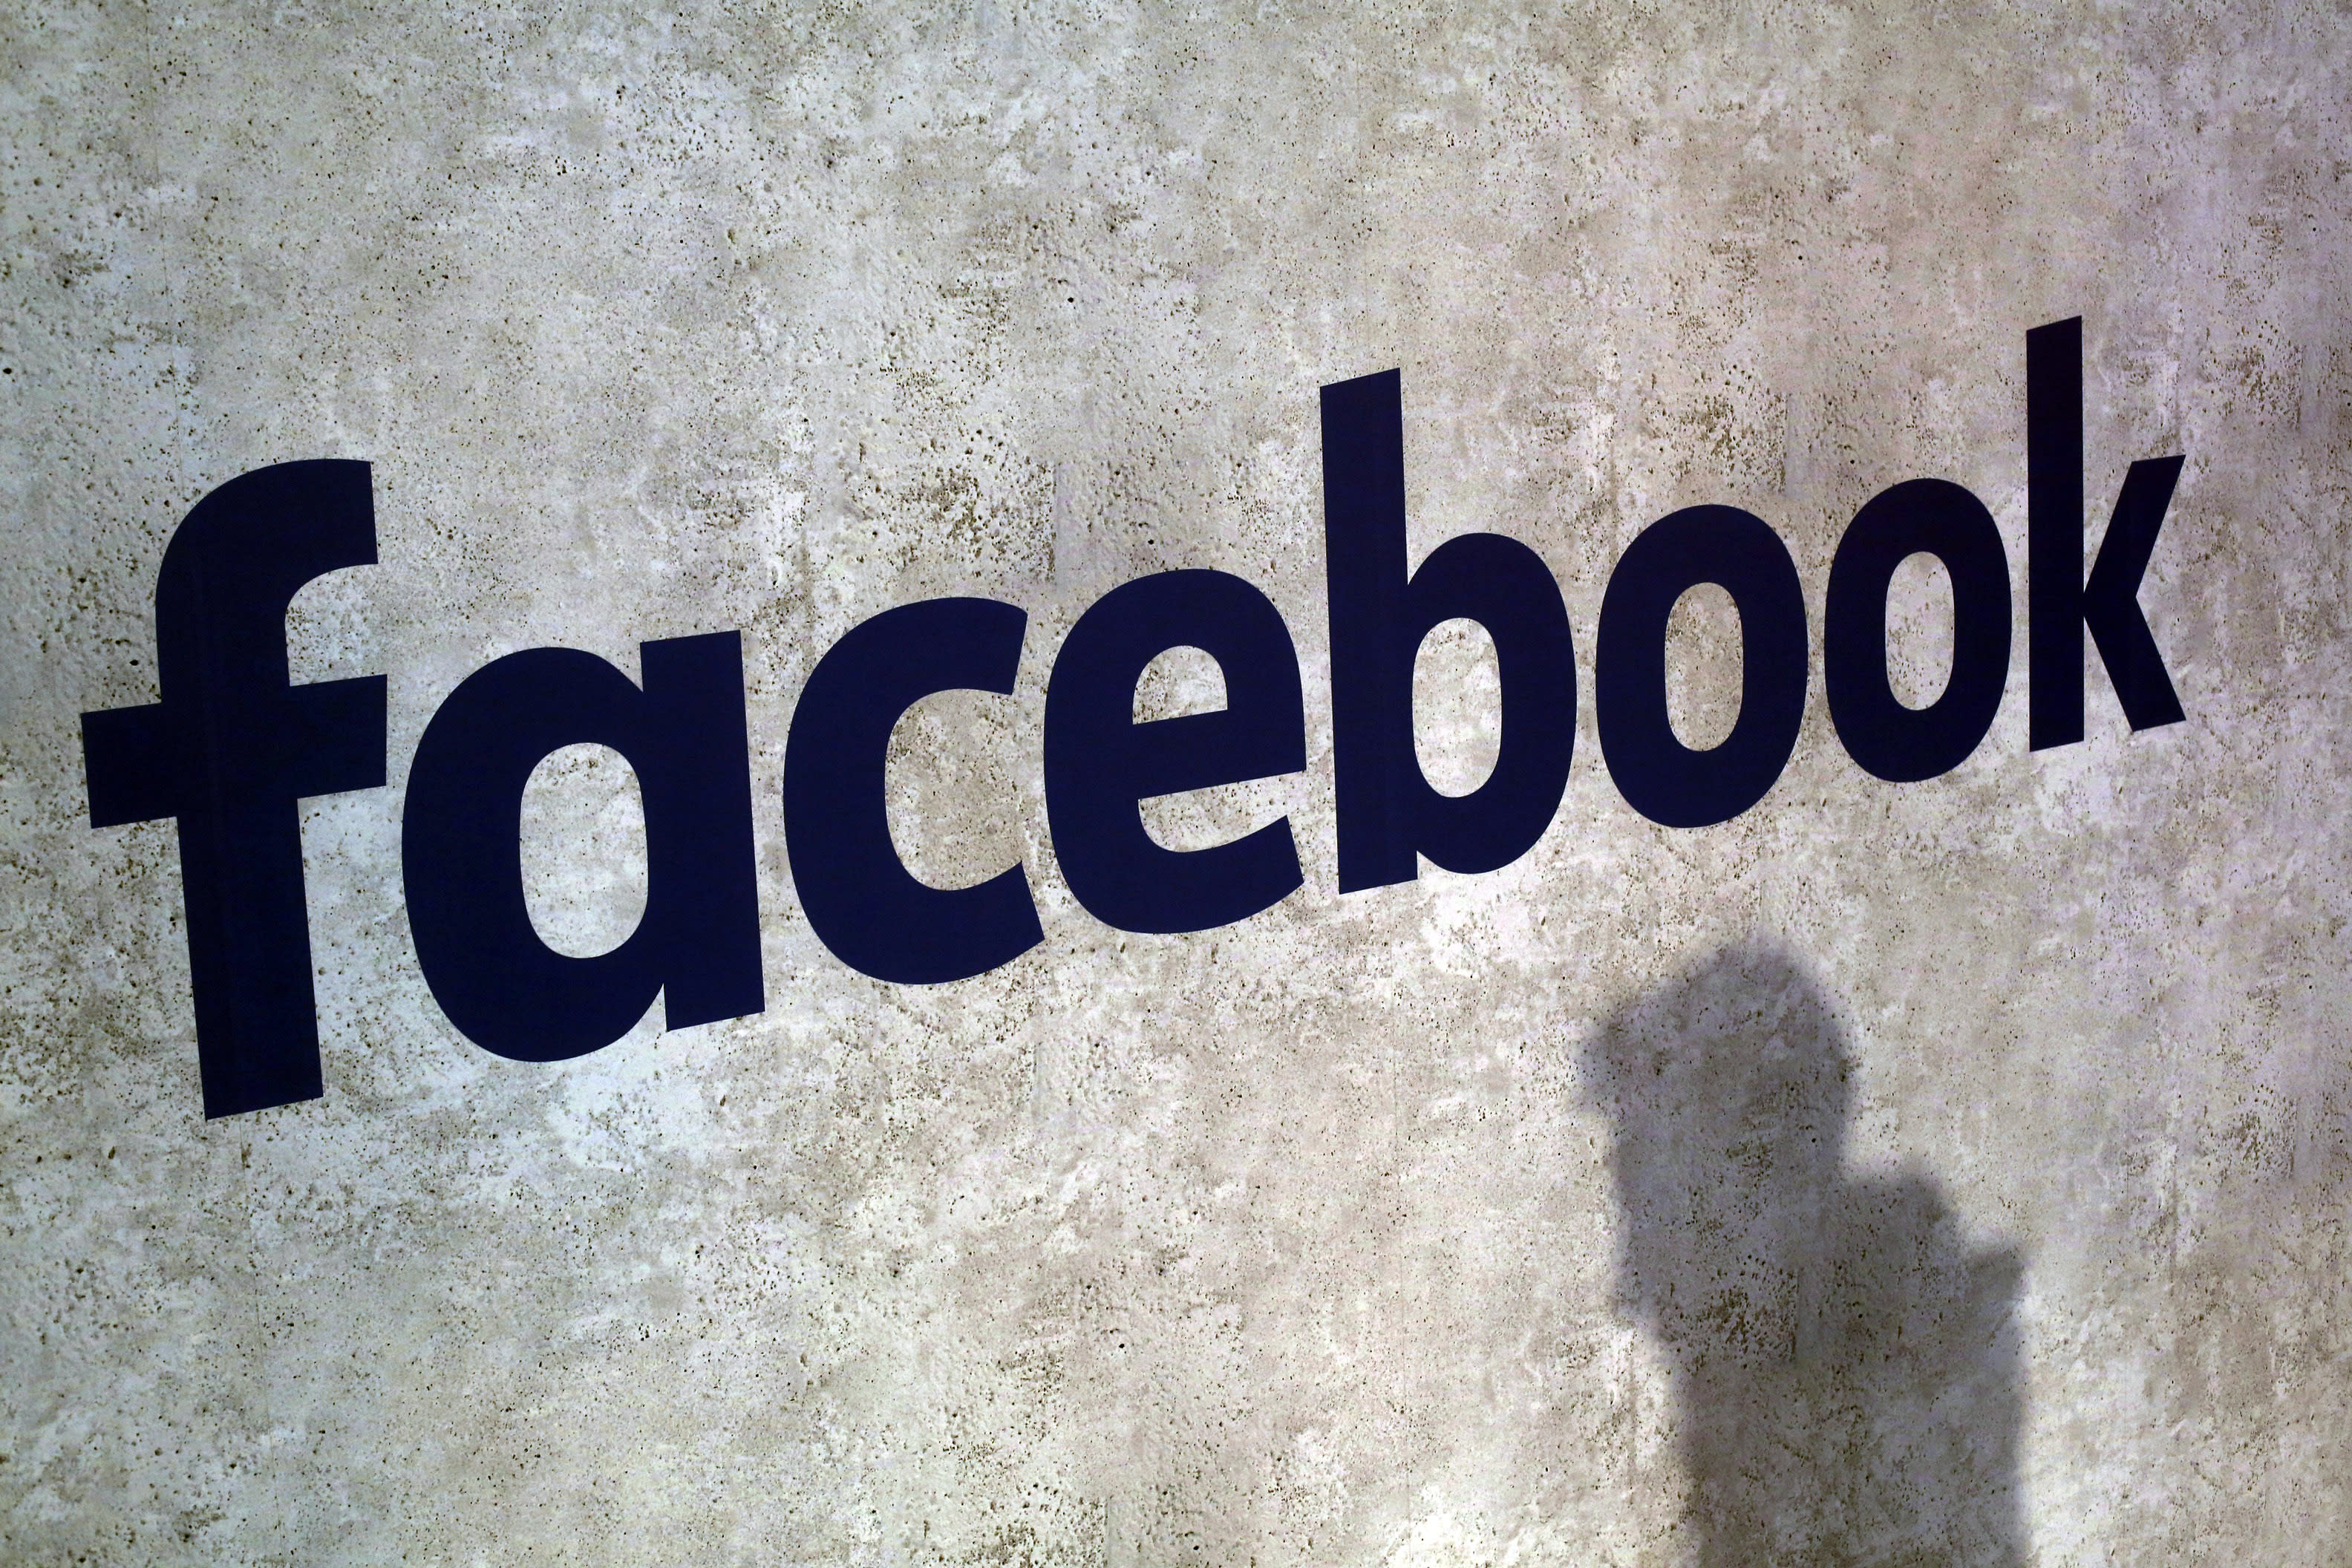 FILE - This Jan. 17, 2017, file photo shows a Facebook logo at Station F in Paris. Ever since Russian agents and other opportunists abused its platform in an attempt to manipulate the 2016 U.S. presidential election, Facebook has insisted, repeatedly, that it's learned its lesson and is no longer a conduit for misinformation, voter suppression and election disruption. (AP Photo/Thibault Camus, File)